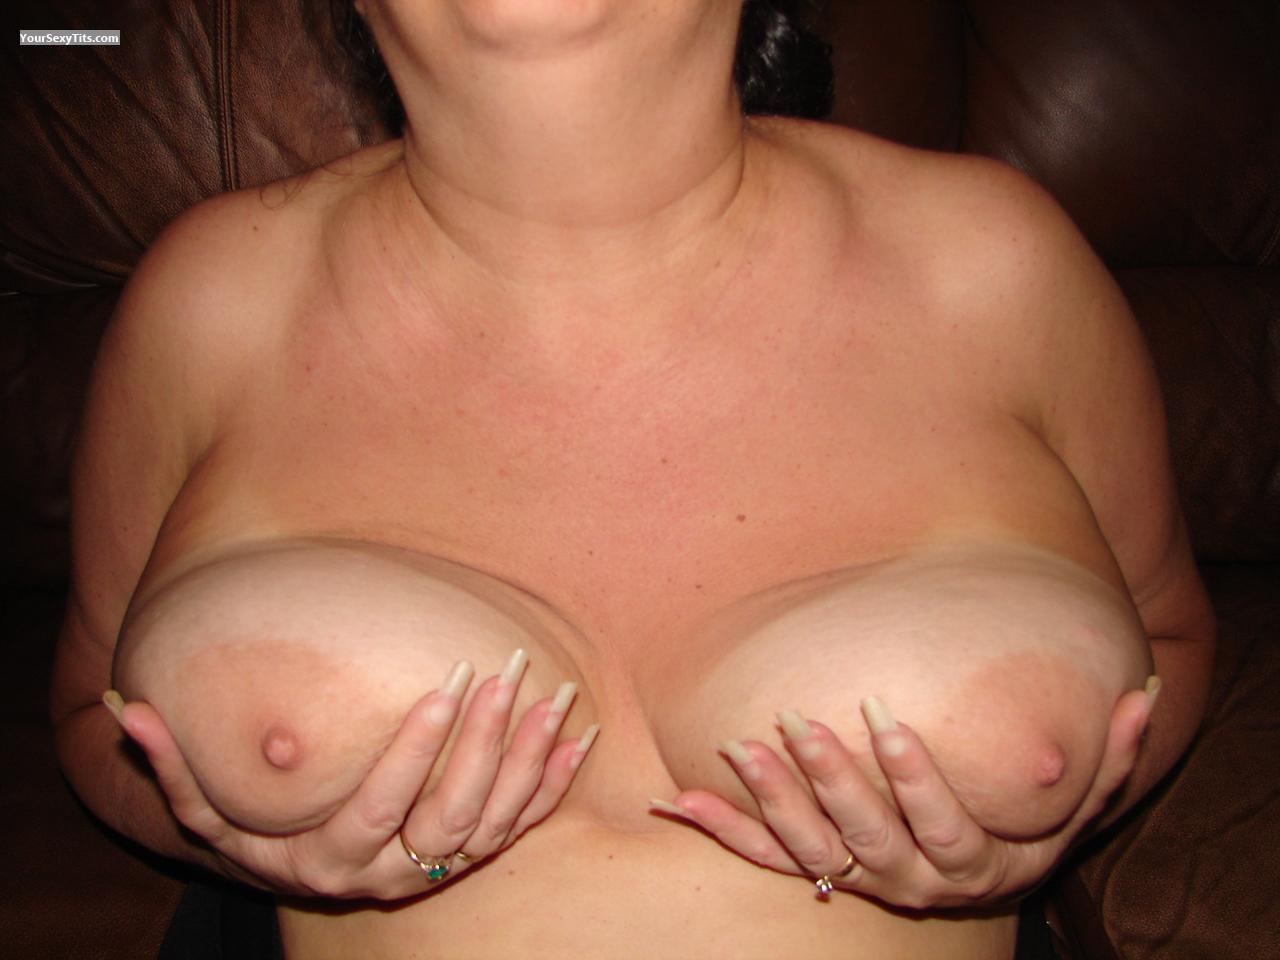 Tit Flash: Big Tits - Soccer Mom from United States